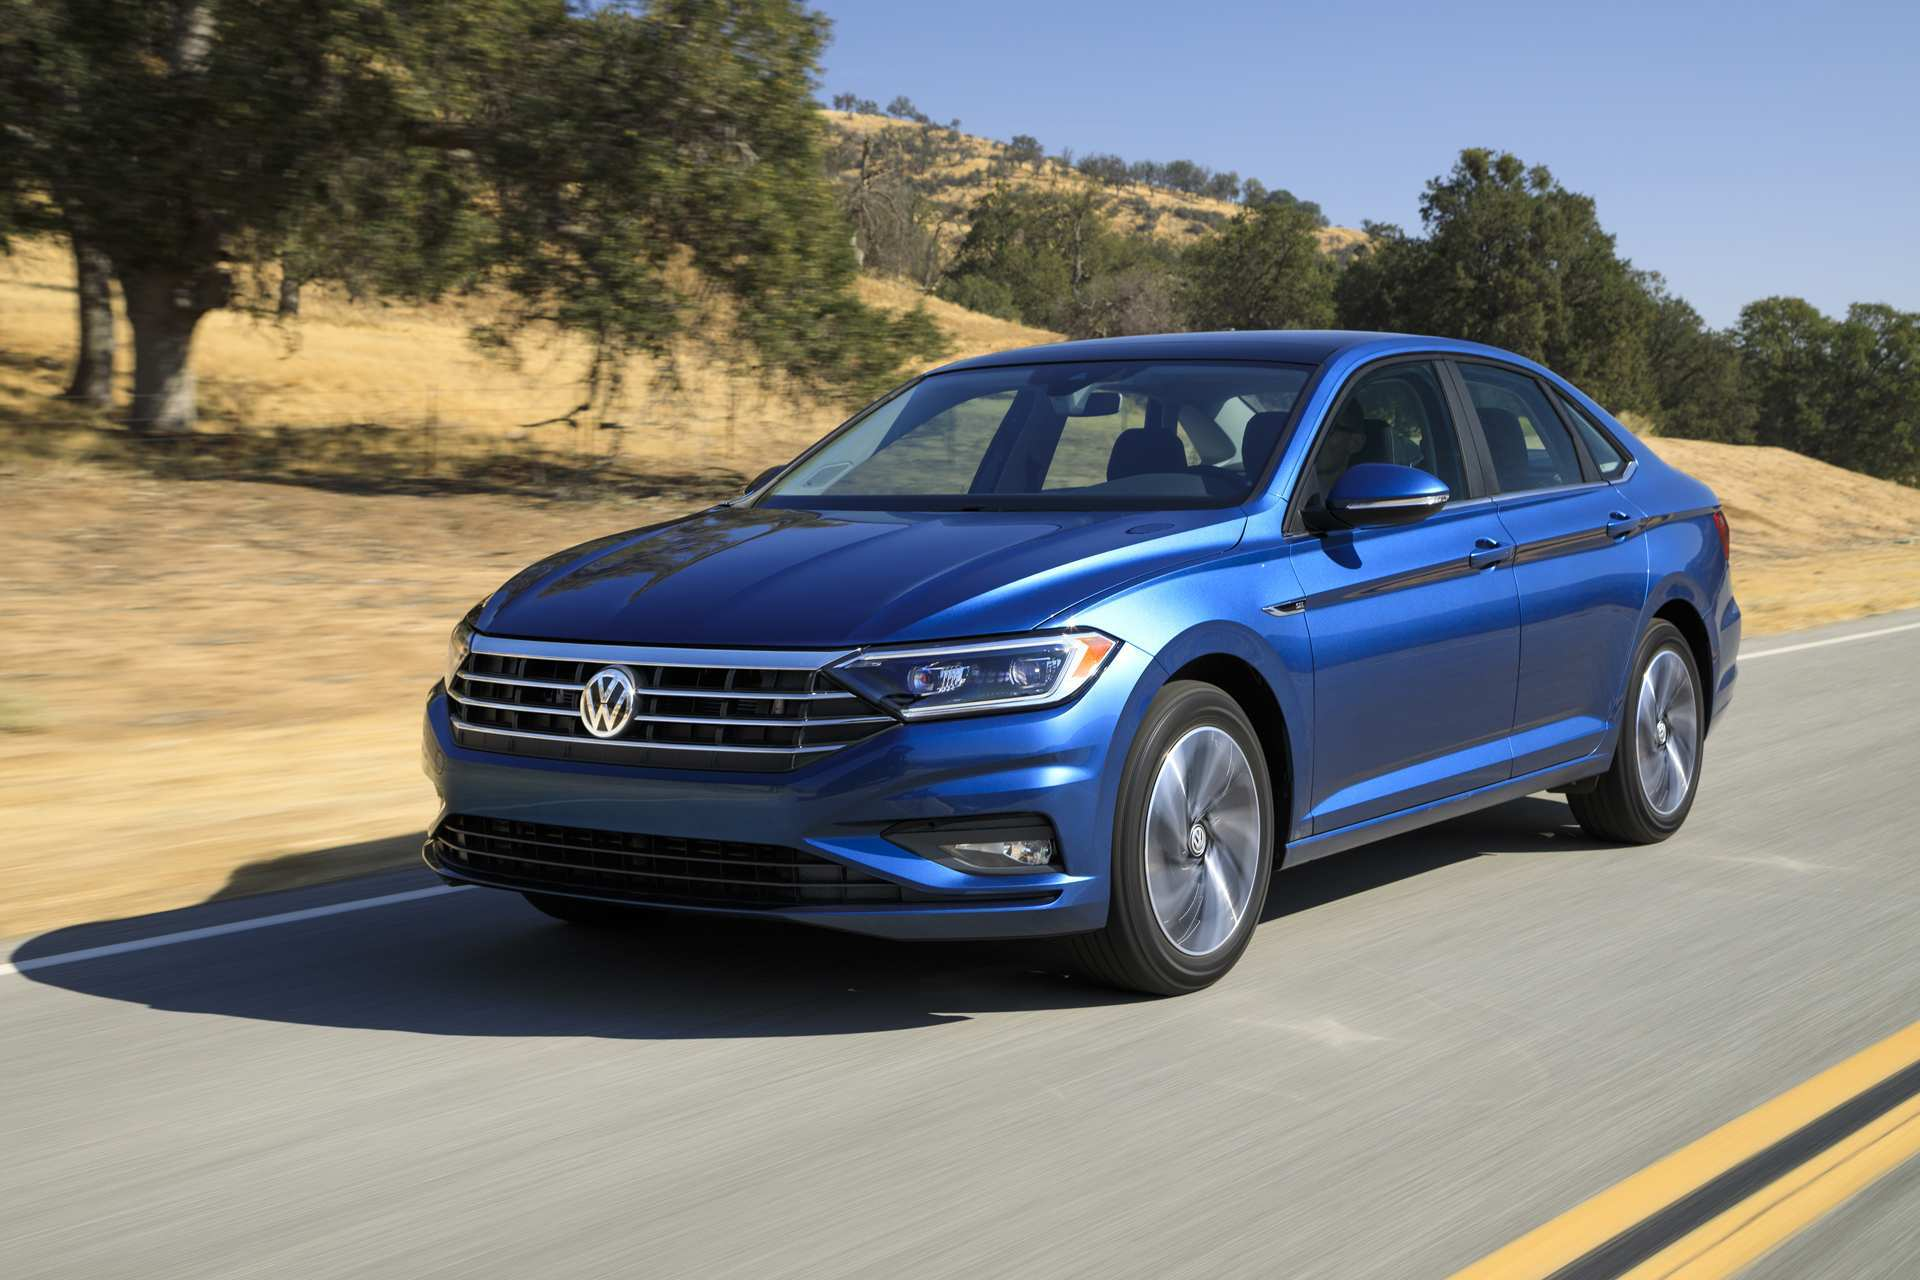 97 The Best 2019 Volkswagen Jetta Concept And Review